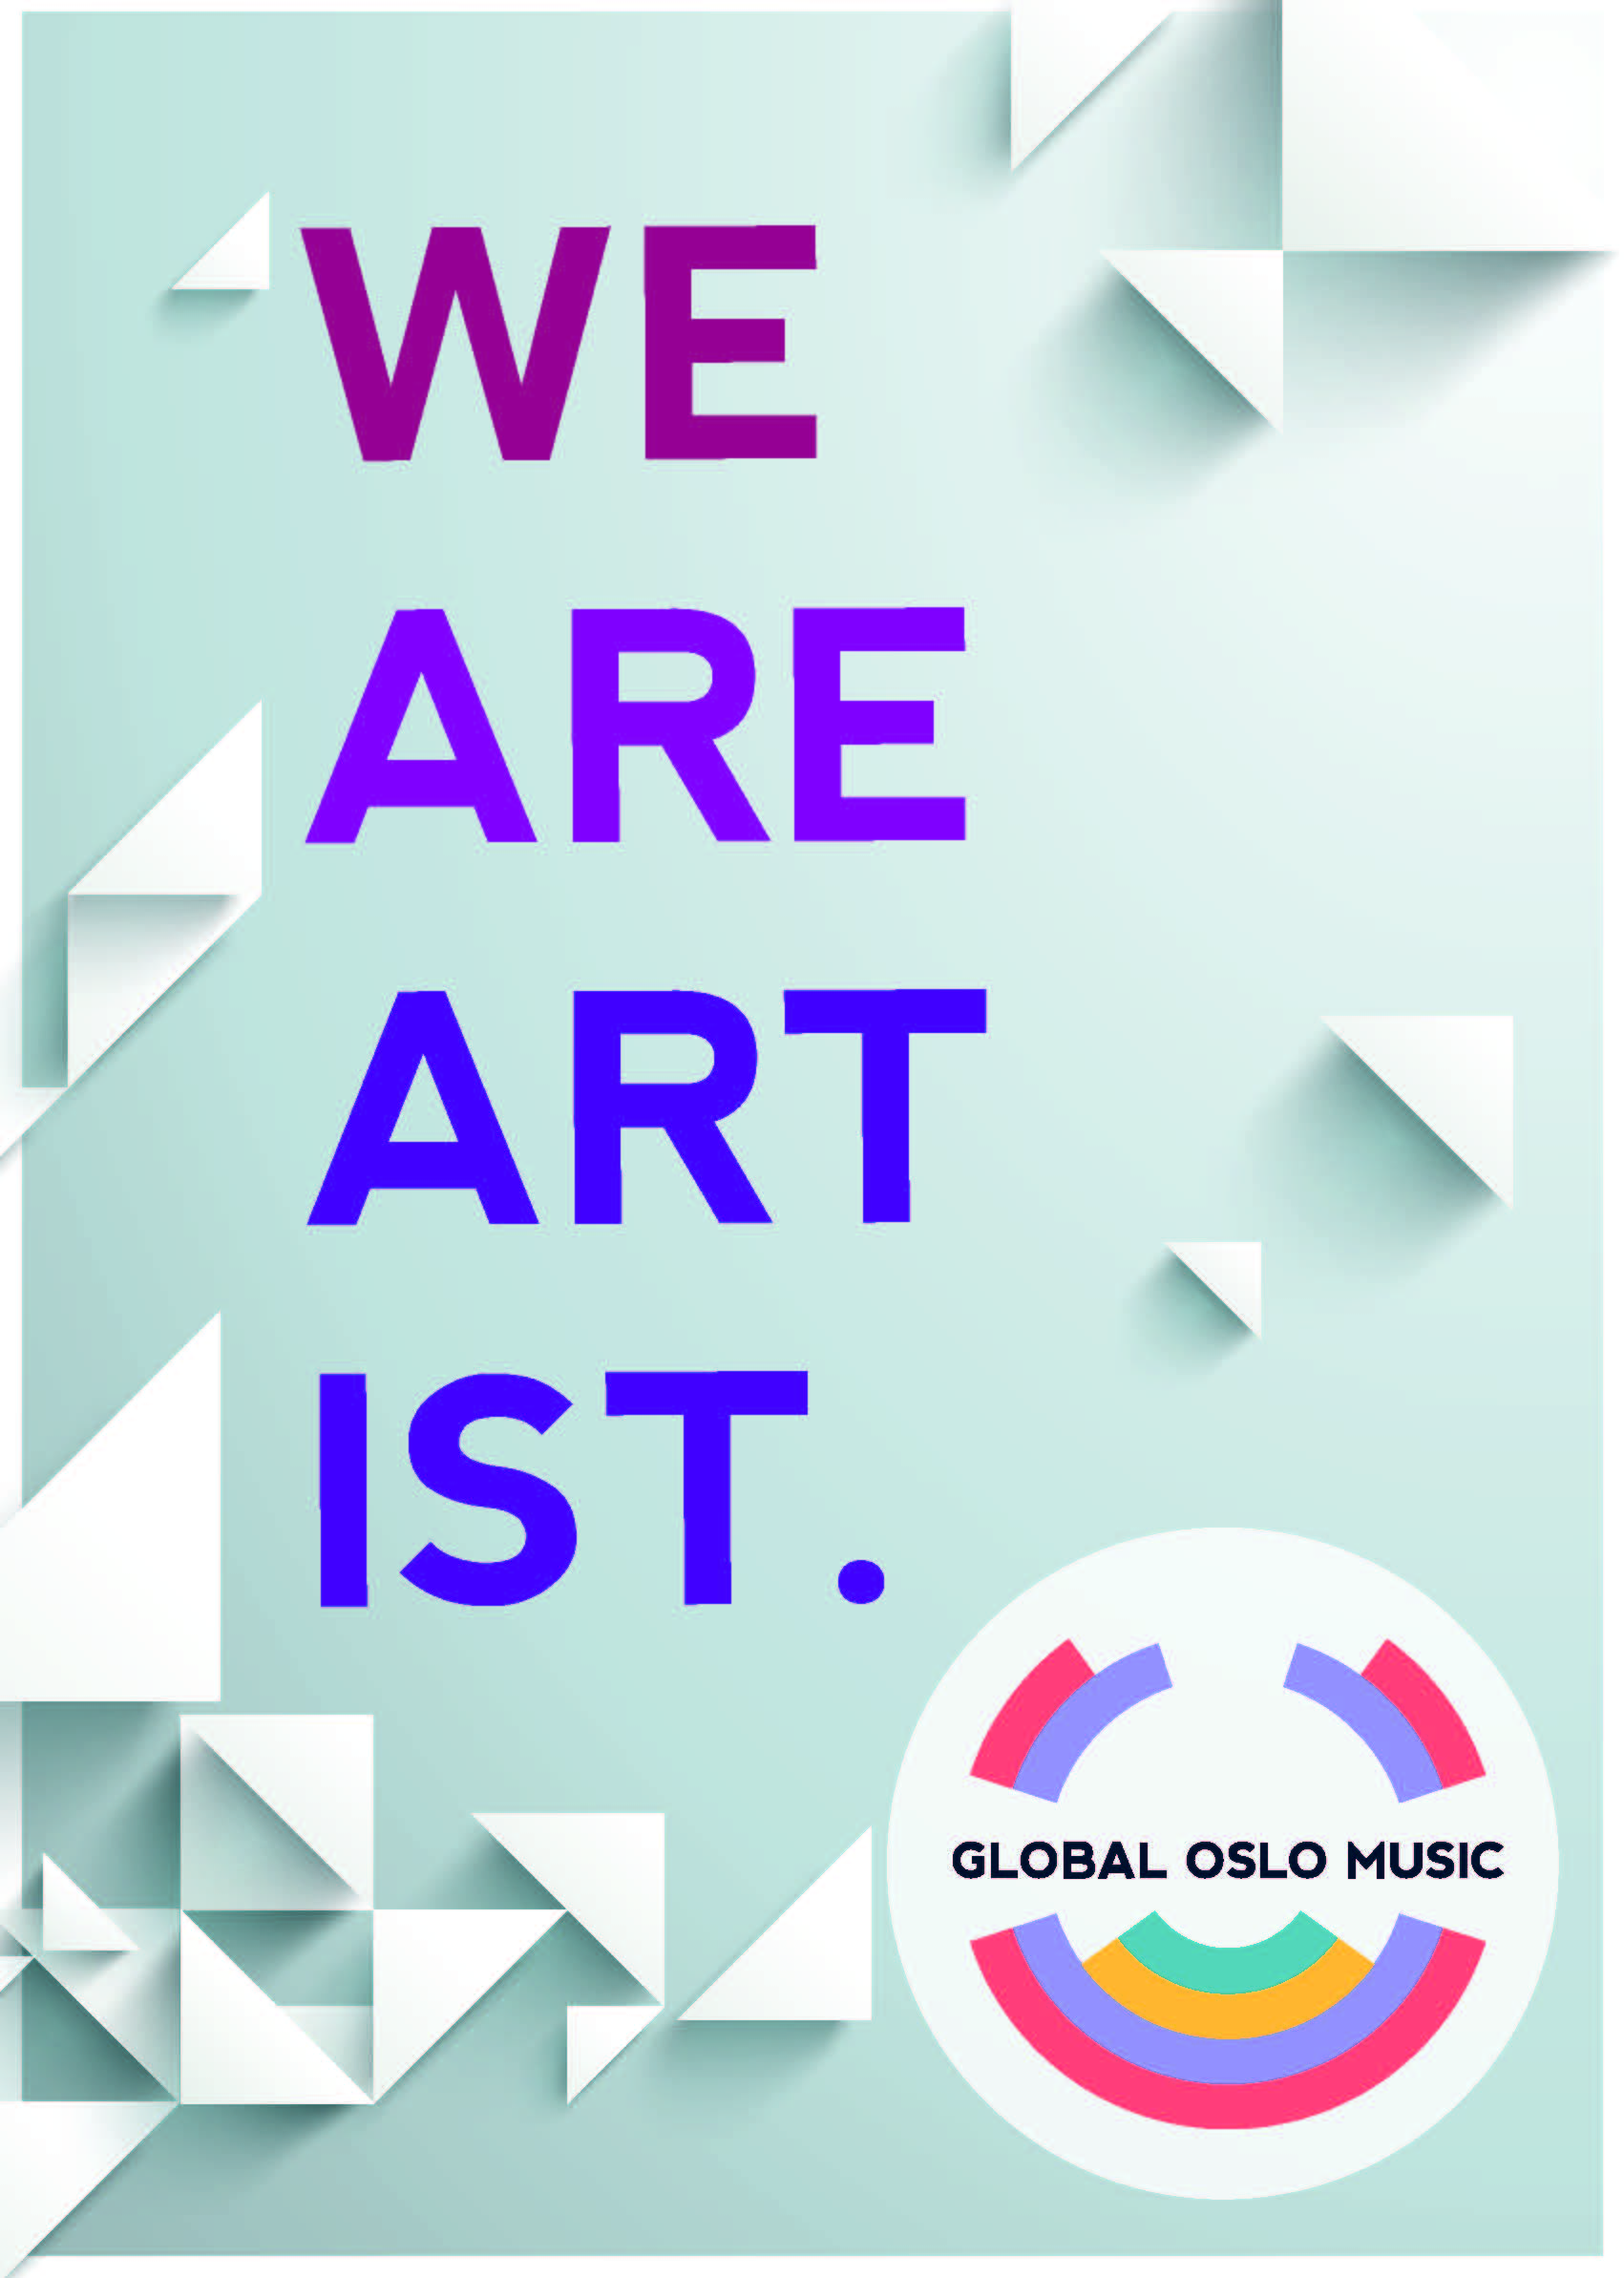 we_Are_artist_global_oslo_music